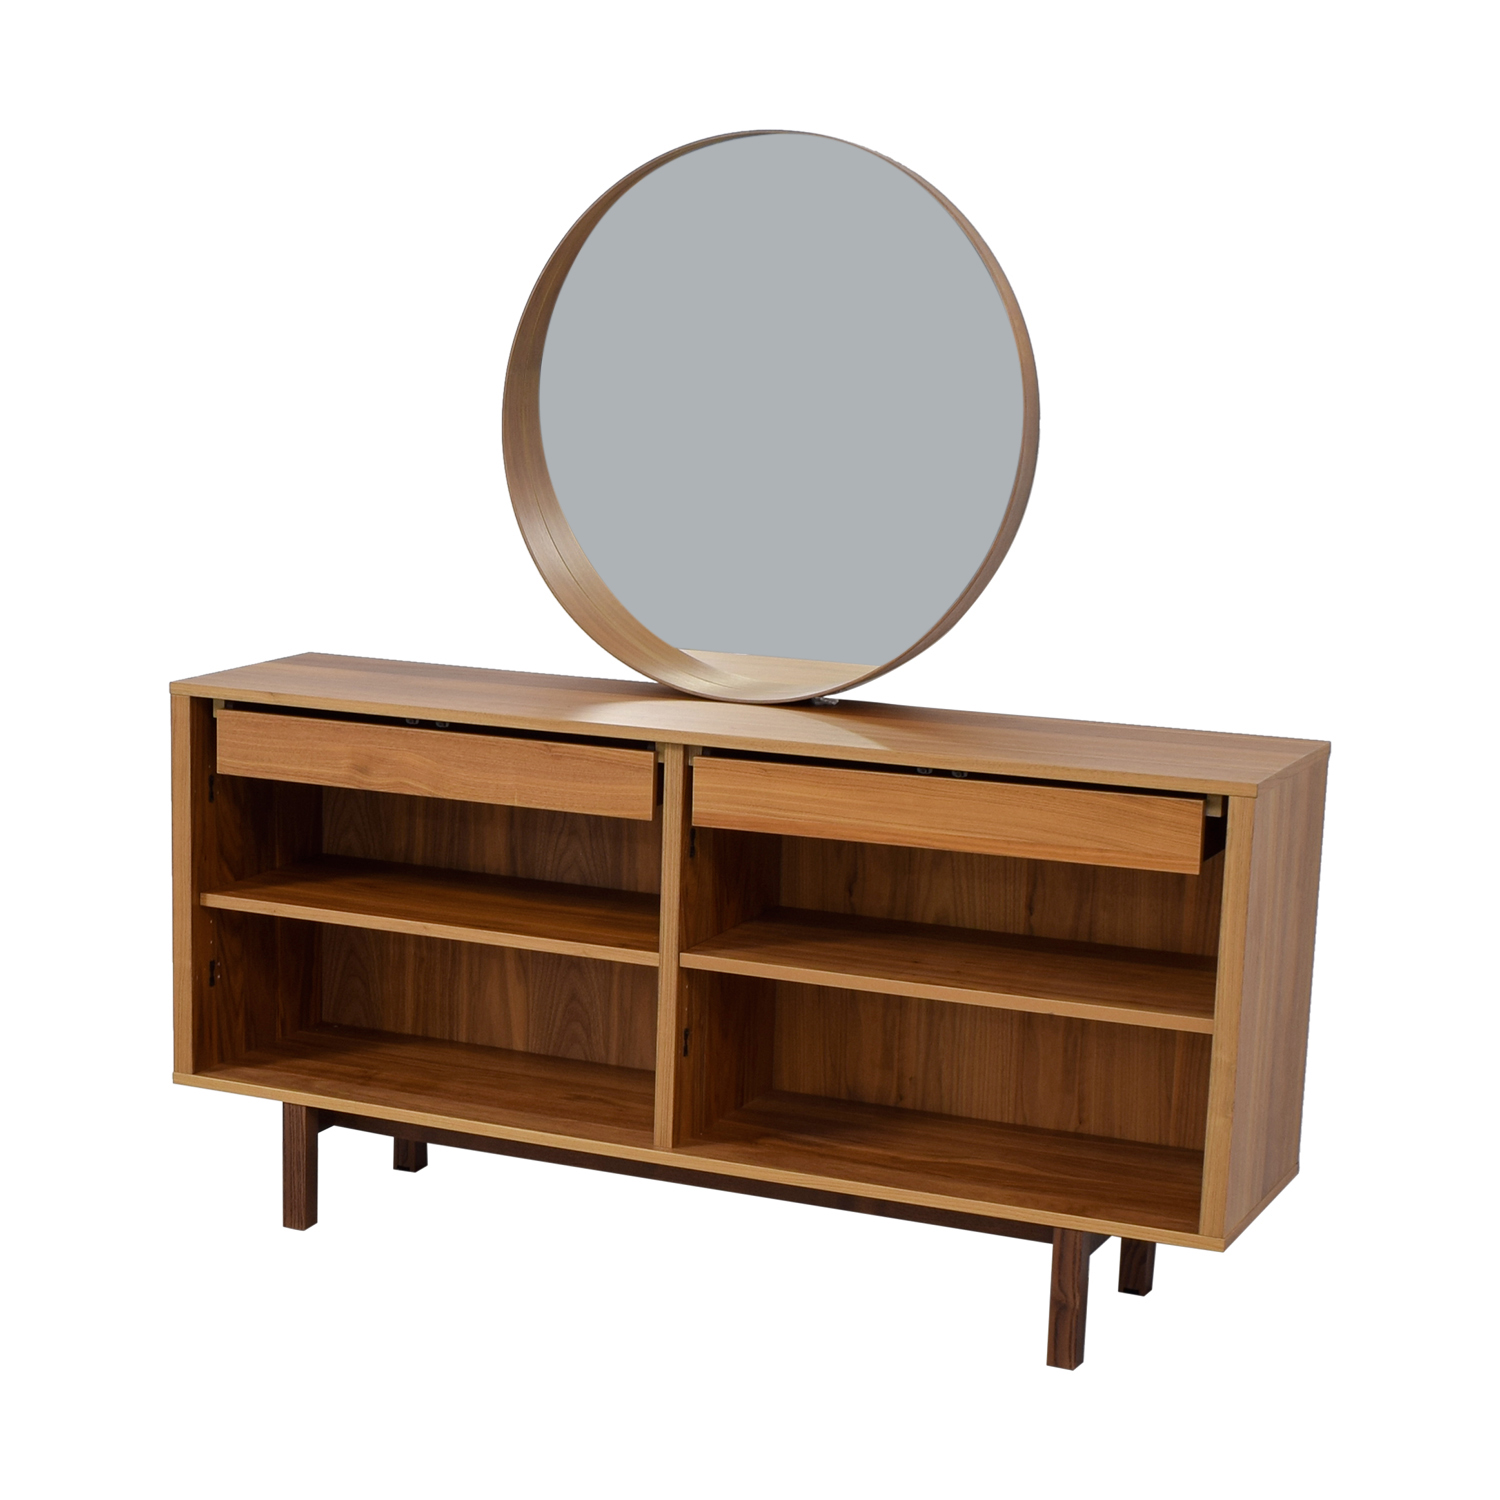 Ikea Sideboard 70 Off Ikea Ikea Stockholm Sideboard With Mirror Storage